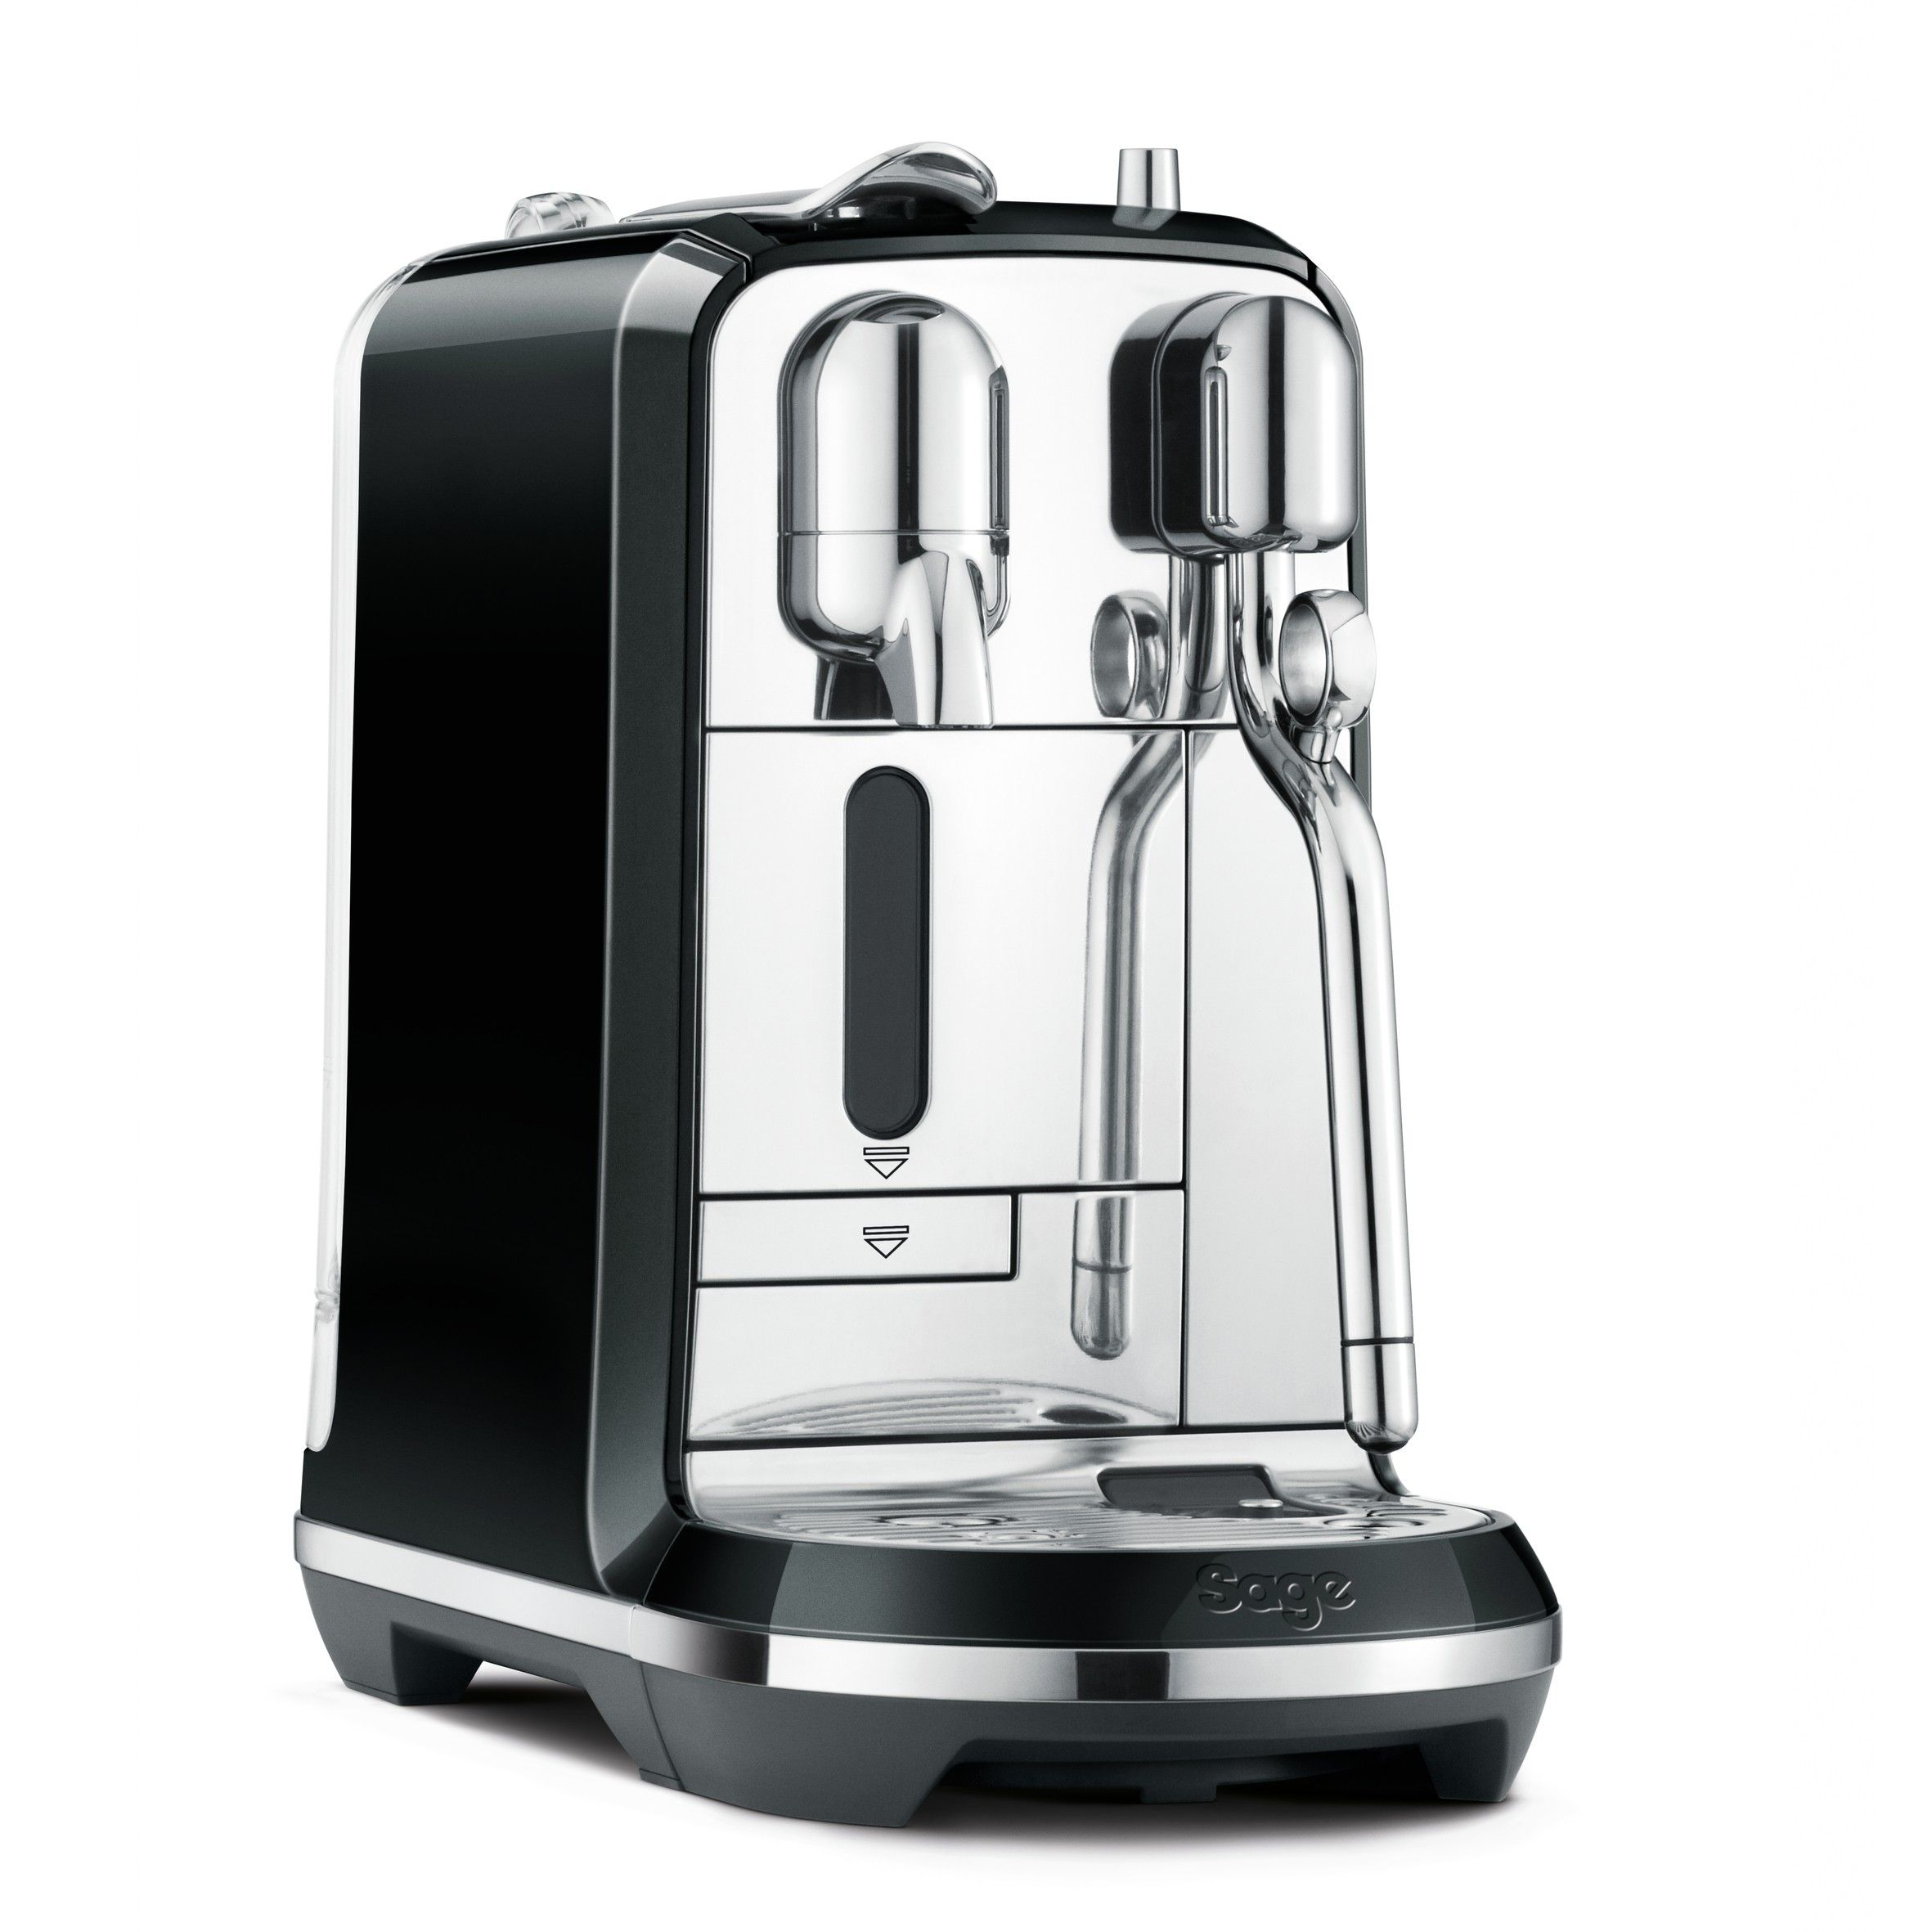 Sage Creatista Nespresso Coffee Machine Black Liquorice